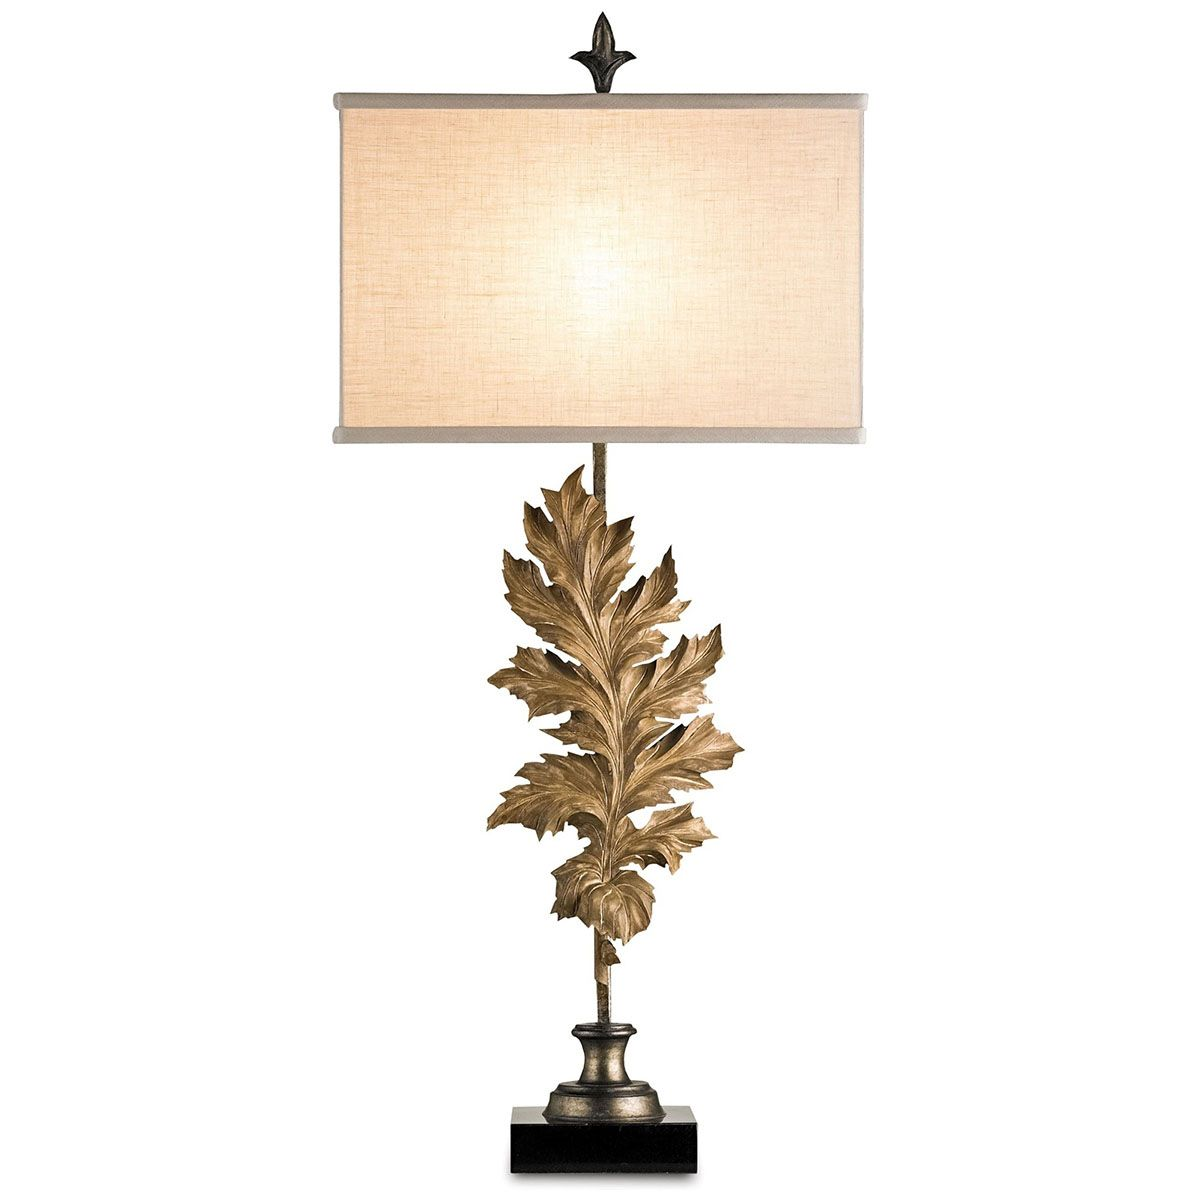 Currey And Company Buffet Lamps: Currey & Company Autumn Console Lamp CC-6467